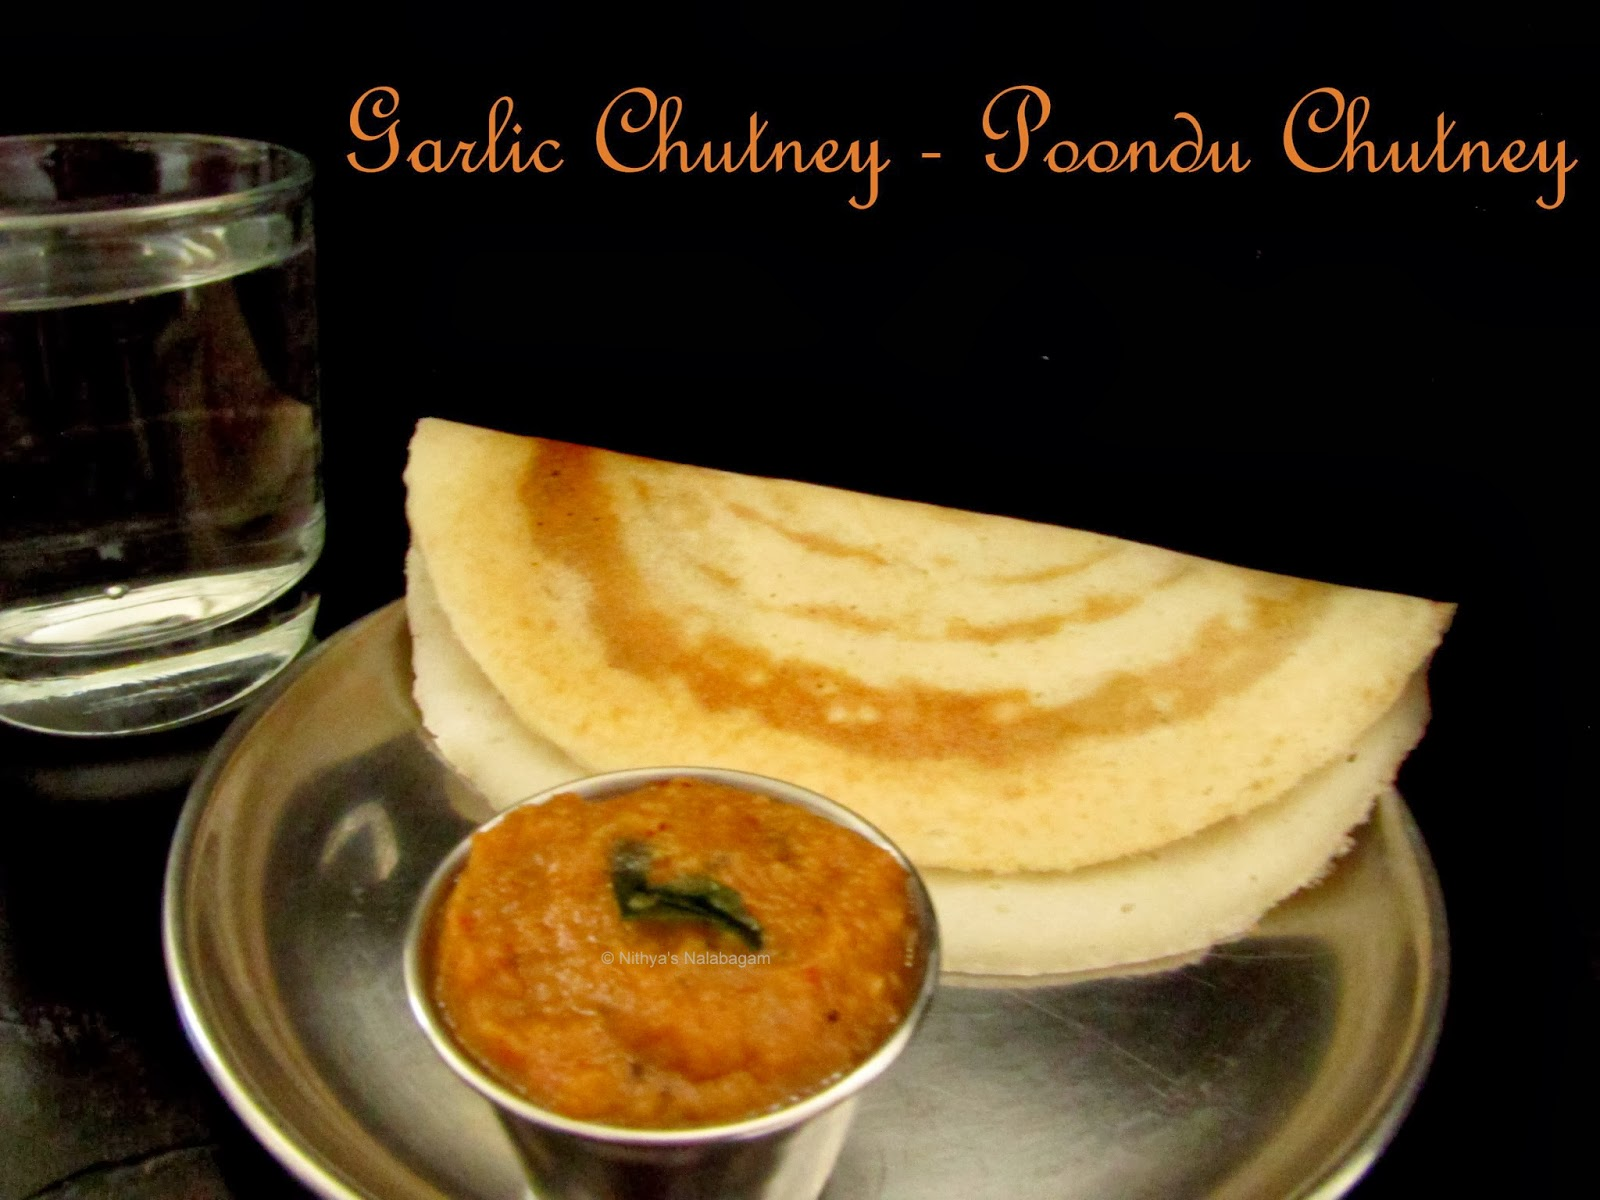 Garlic Chutney